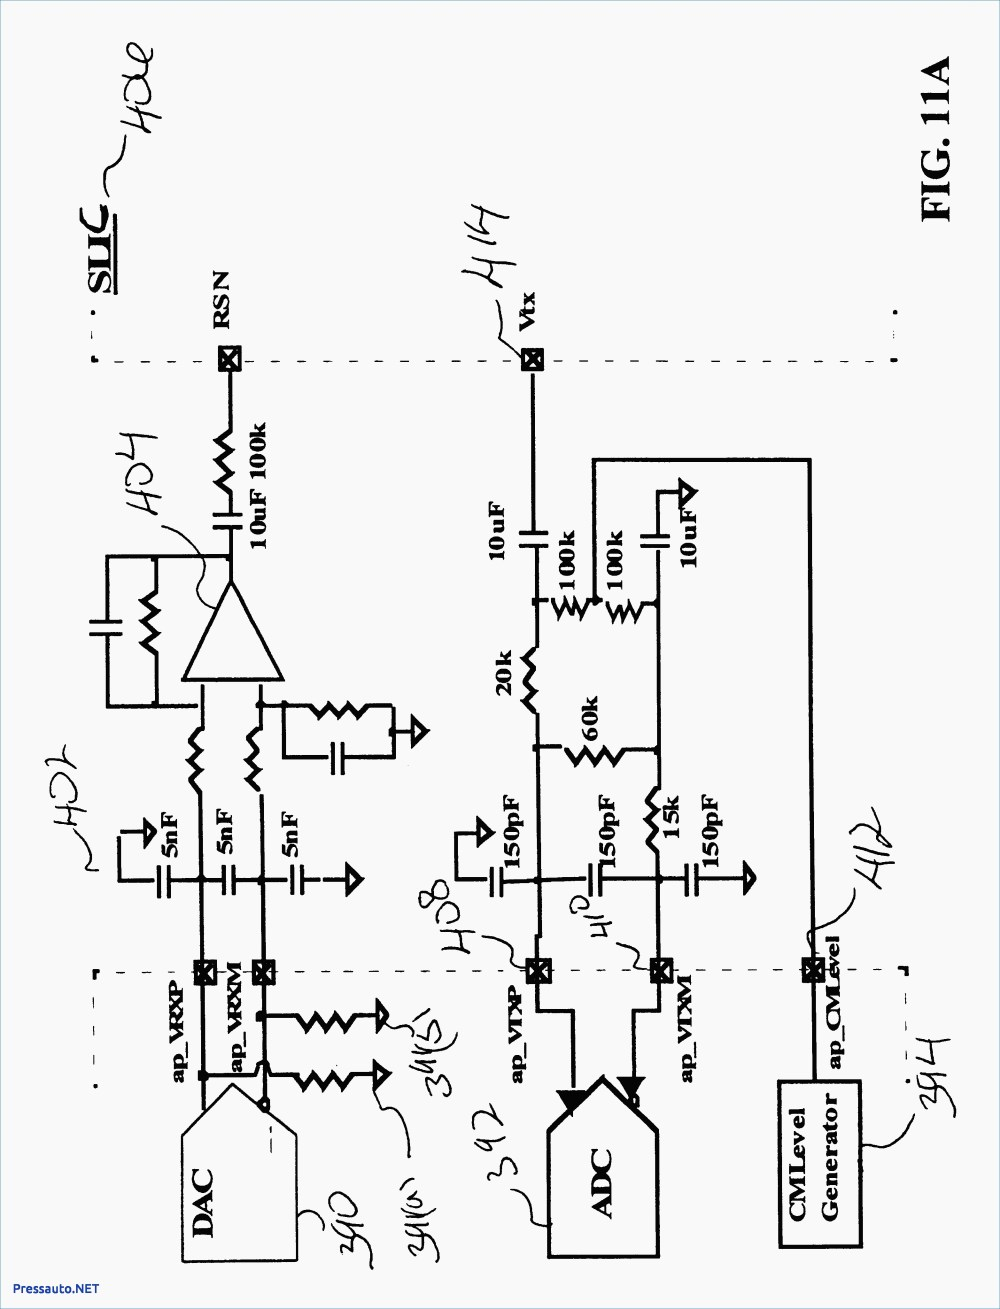 medium resolution of wiring acme diagram industrial control transformer wiring diagram acme open delta wiring diagram